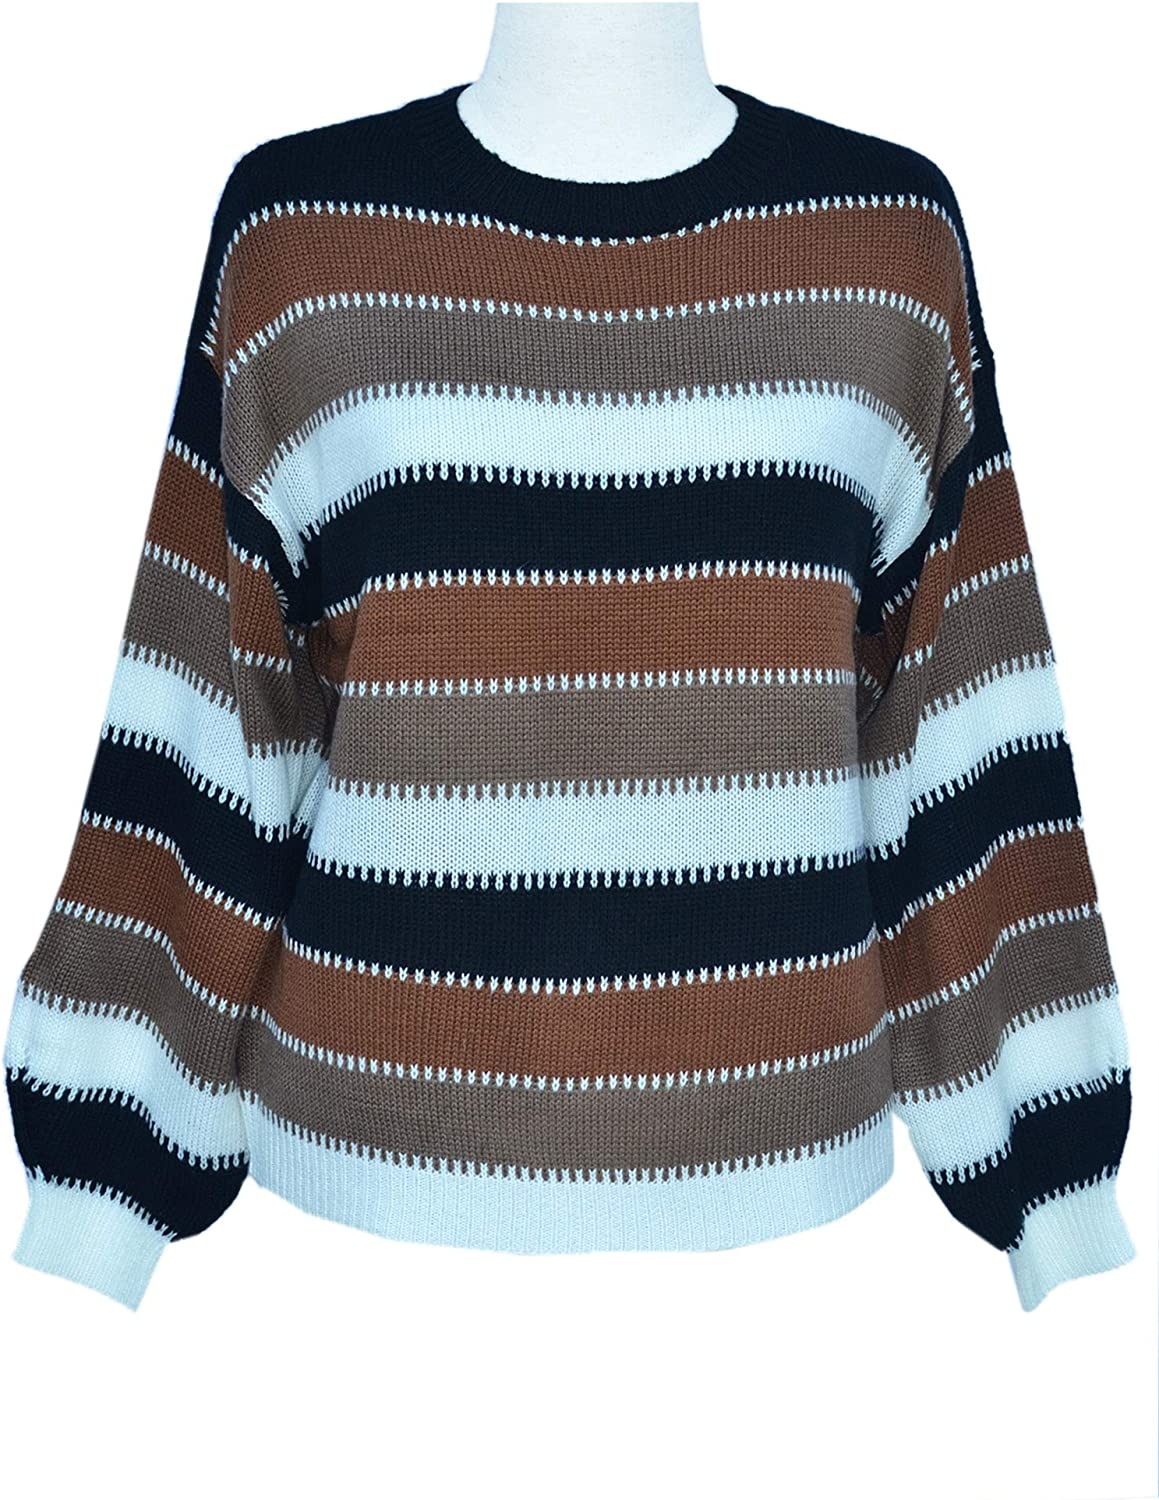 Angashion Women's Sweaters Casual Long Sleeve Crewneck Striped Winter Pullover Knit Sweater Tops